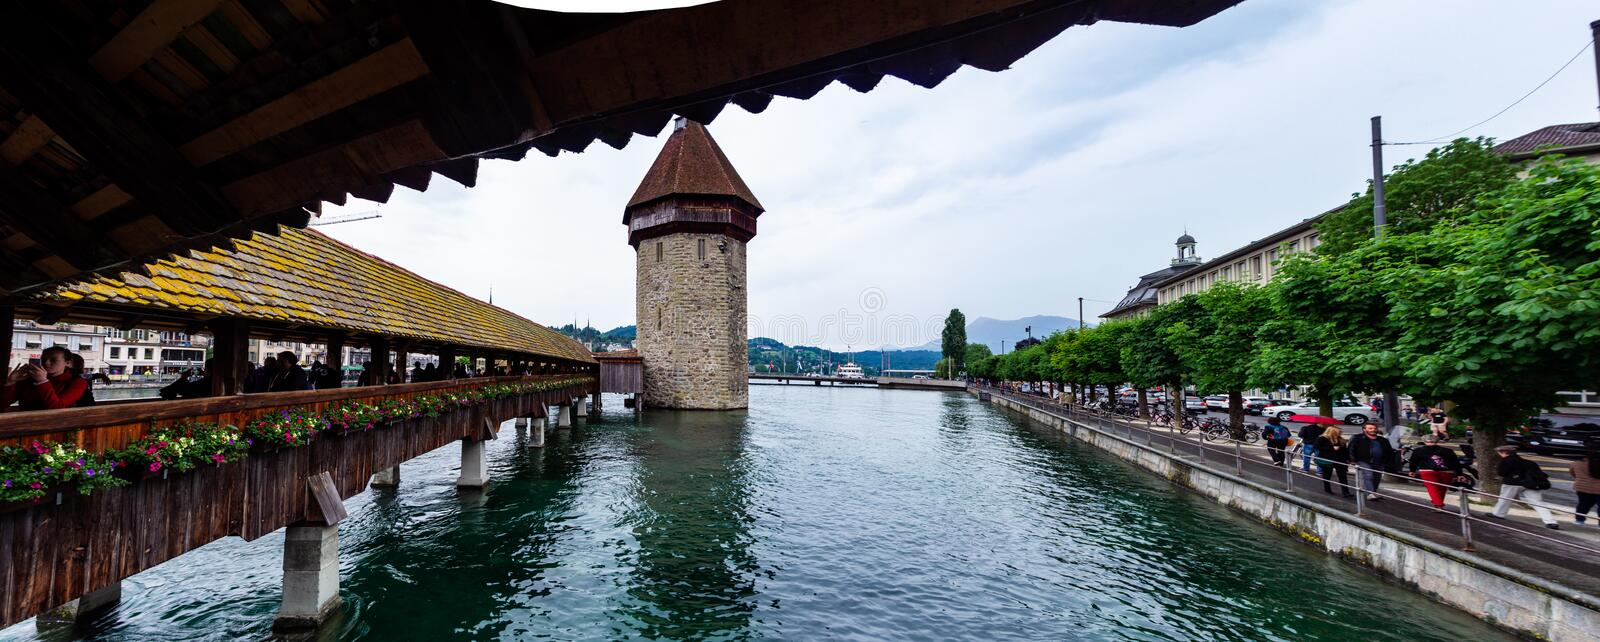 Lucerne Kapellbrucke bridge  scence from the old wooden bridge cloudy day. 2019 royalty free stock photo